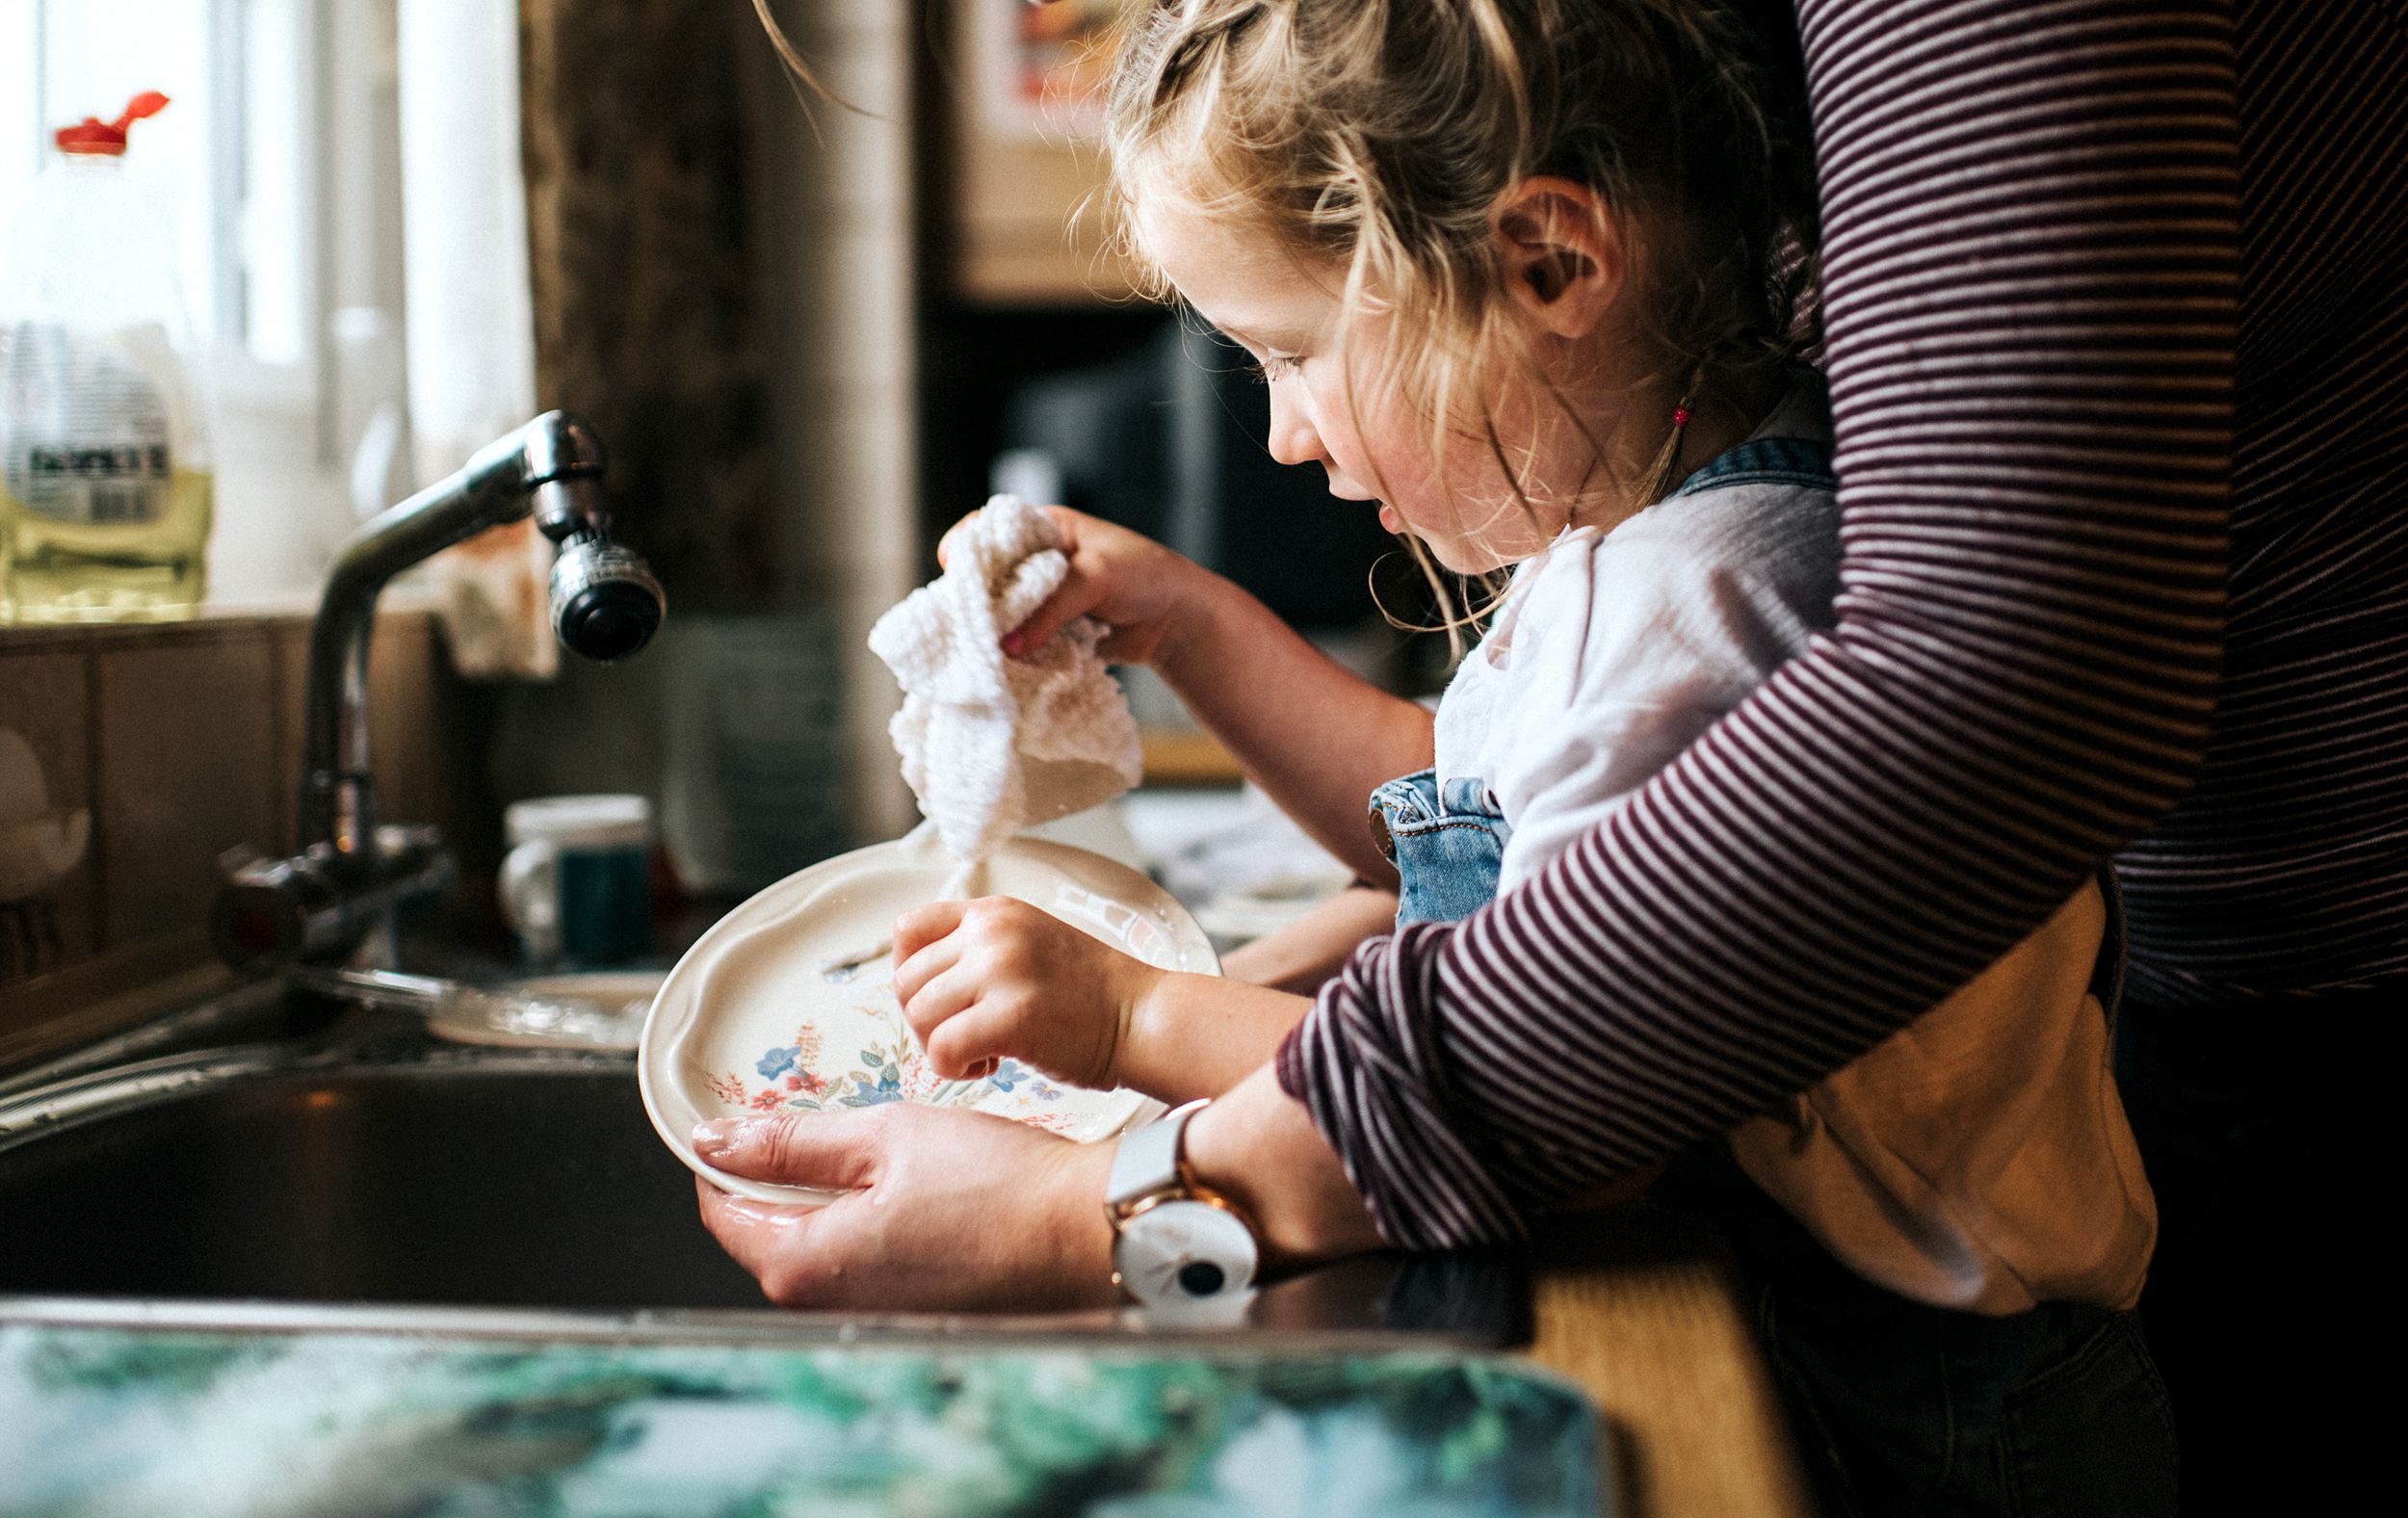 11 ways to teach young kids the value of cleaning up — and get them to do it  willingly